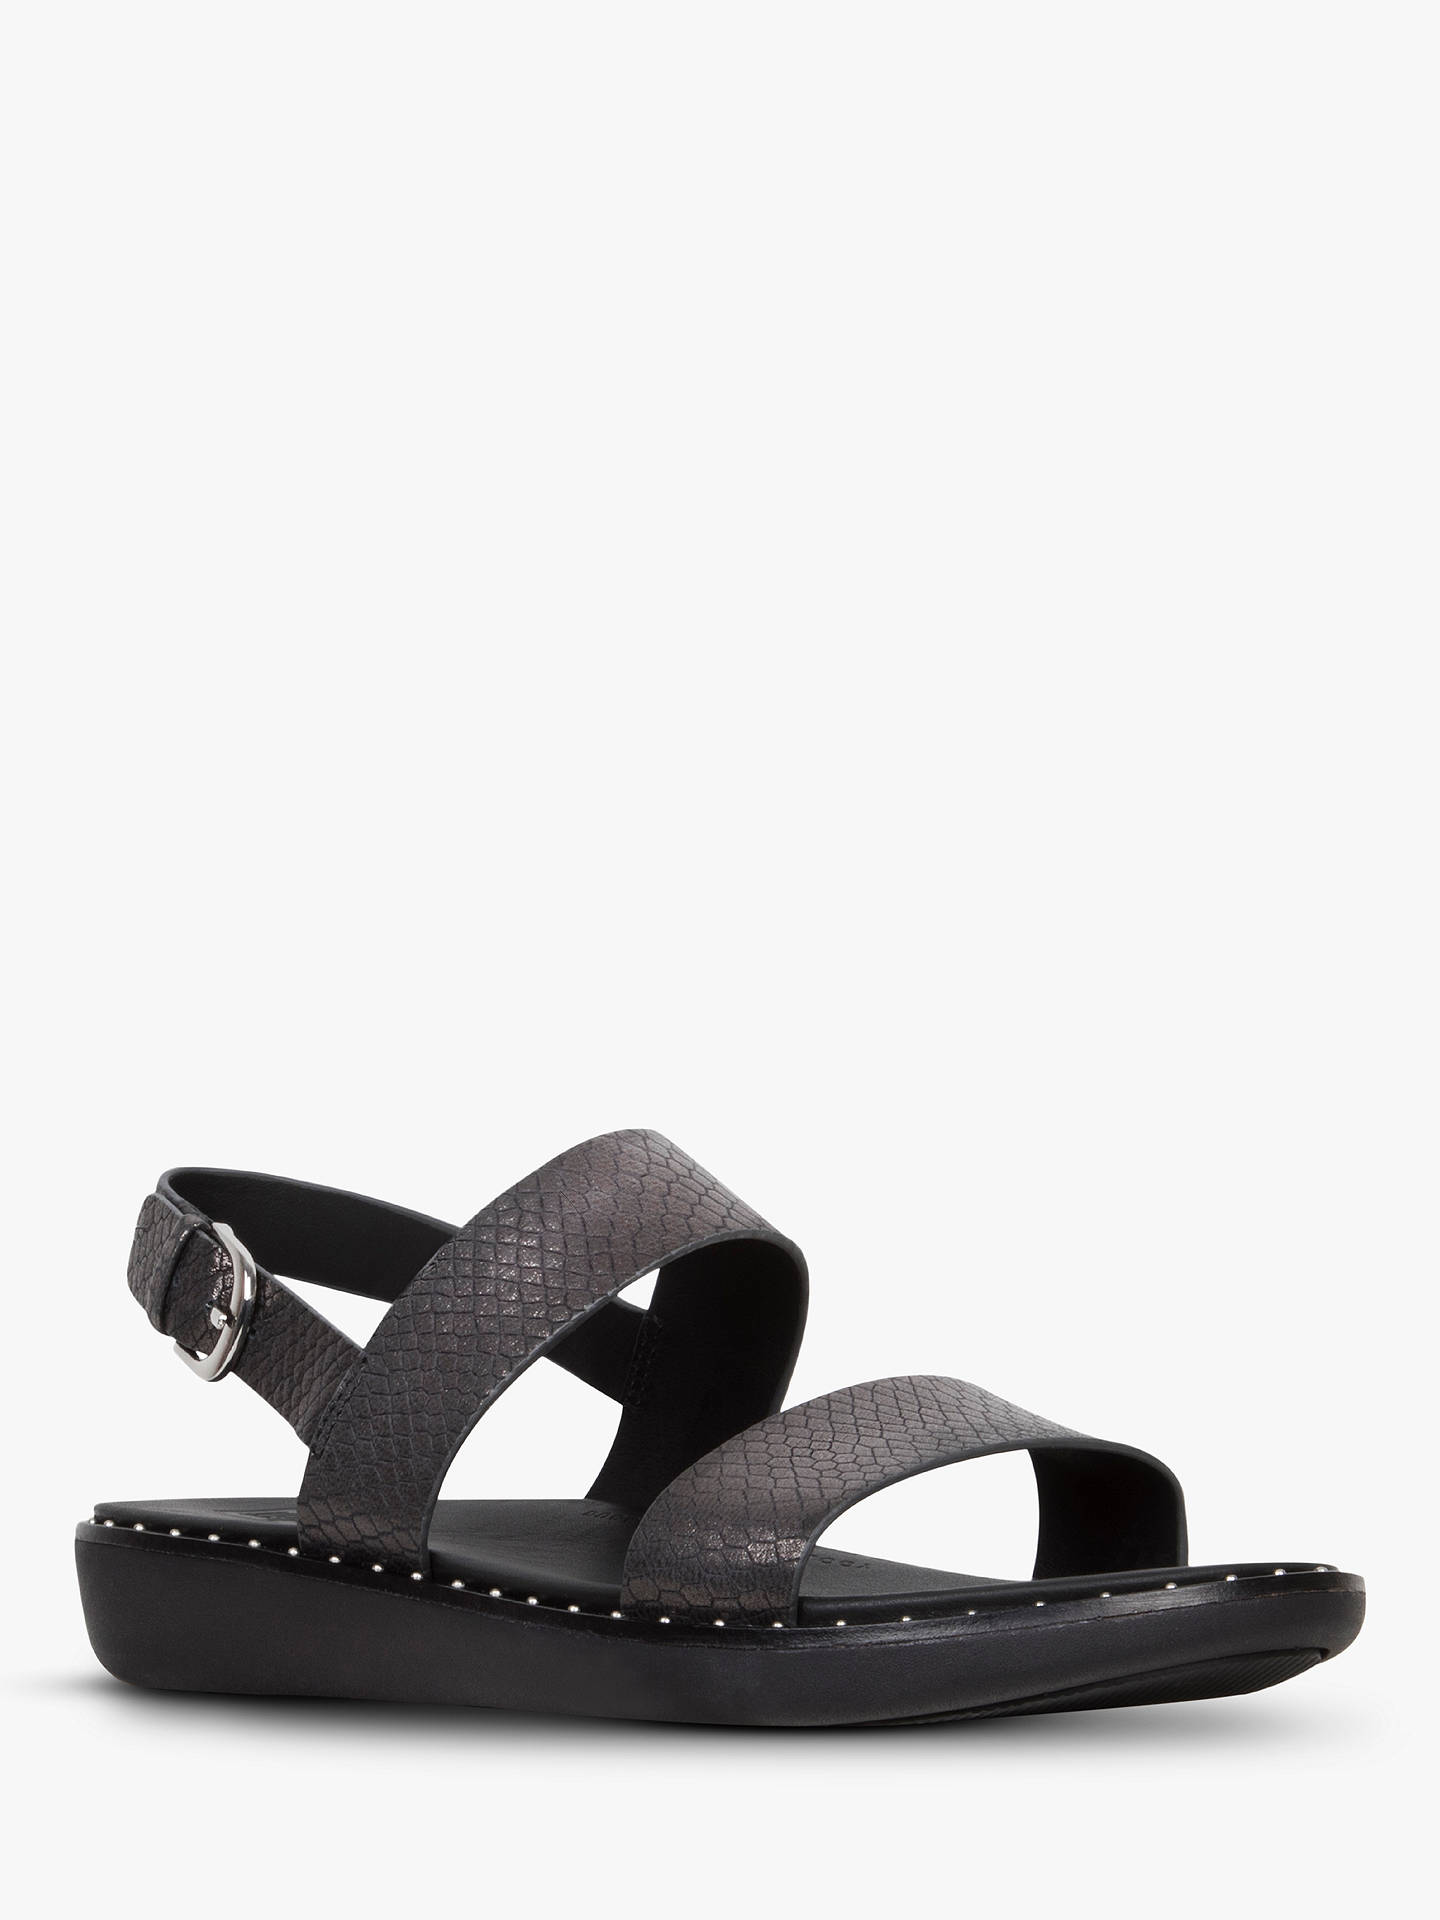 Buy FitFlop Barra Double Strap Sandals, Black Snake Leather, 4 Online at johnlewis.com